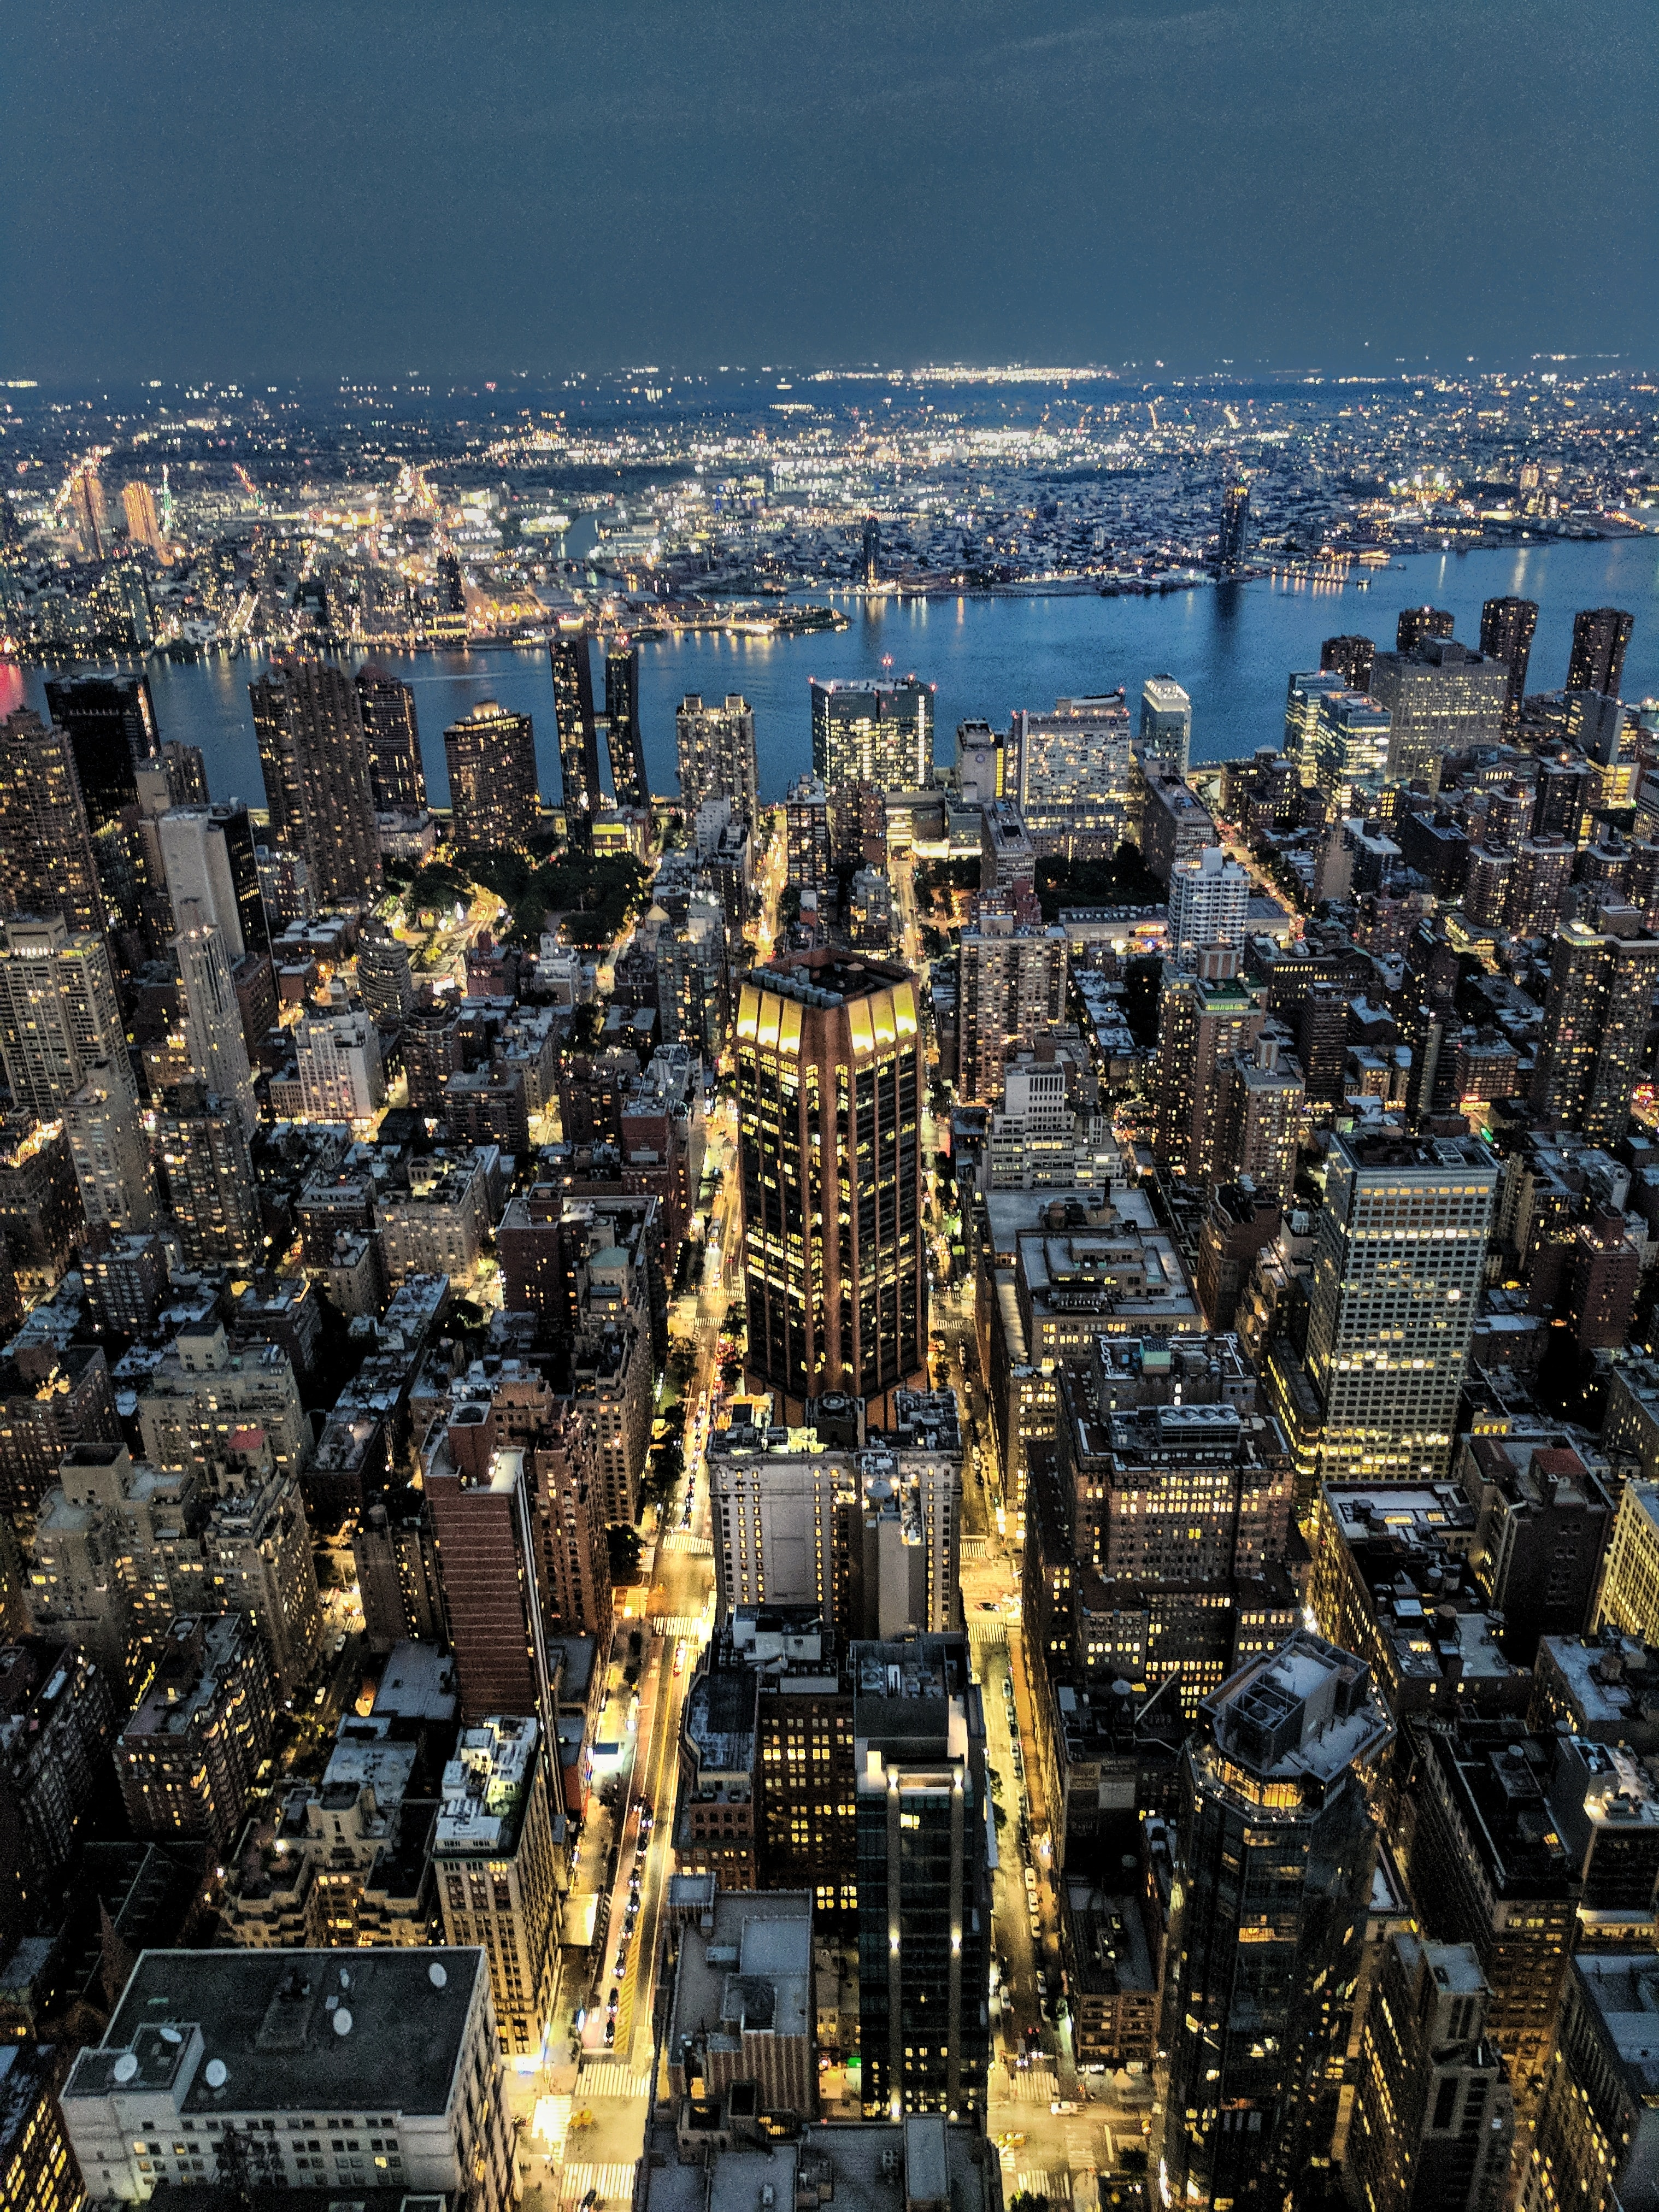 areal view of city at nighttime